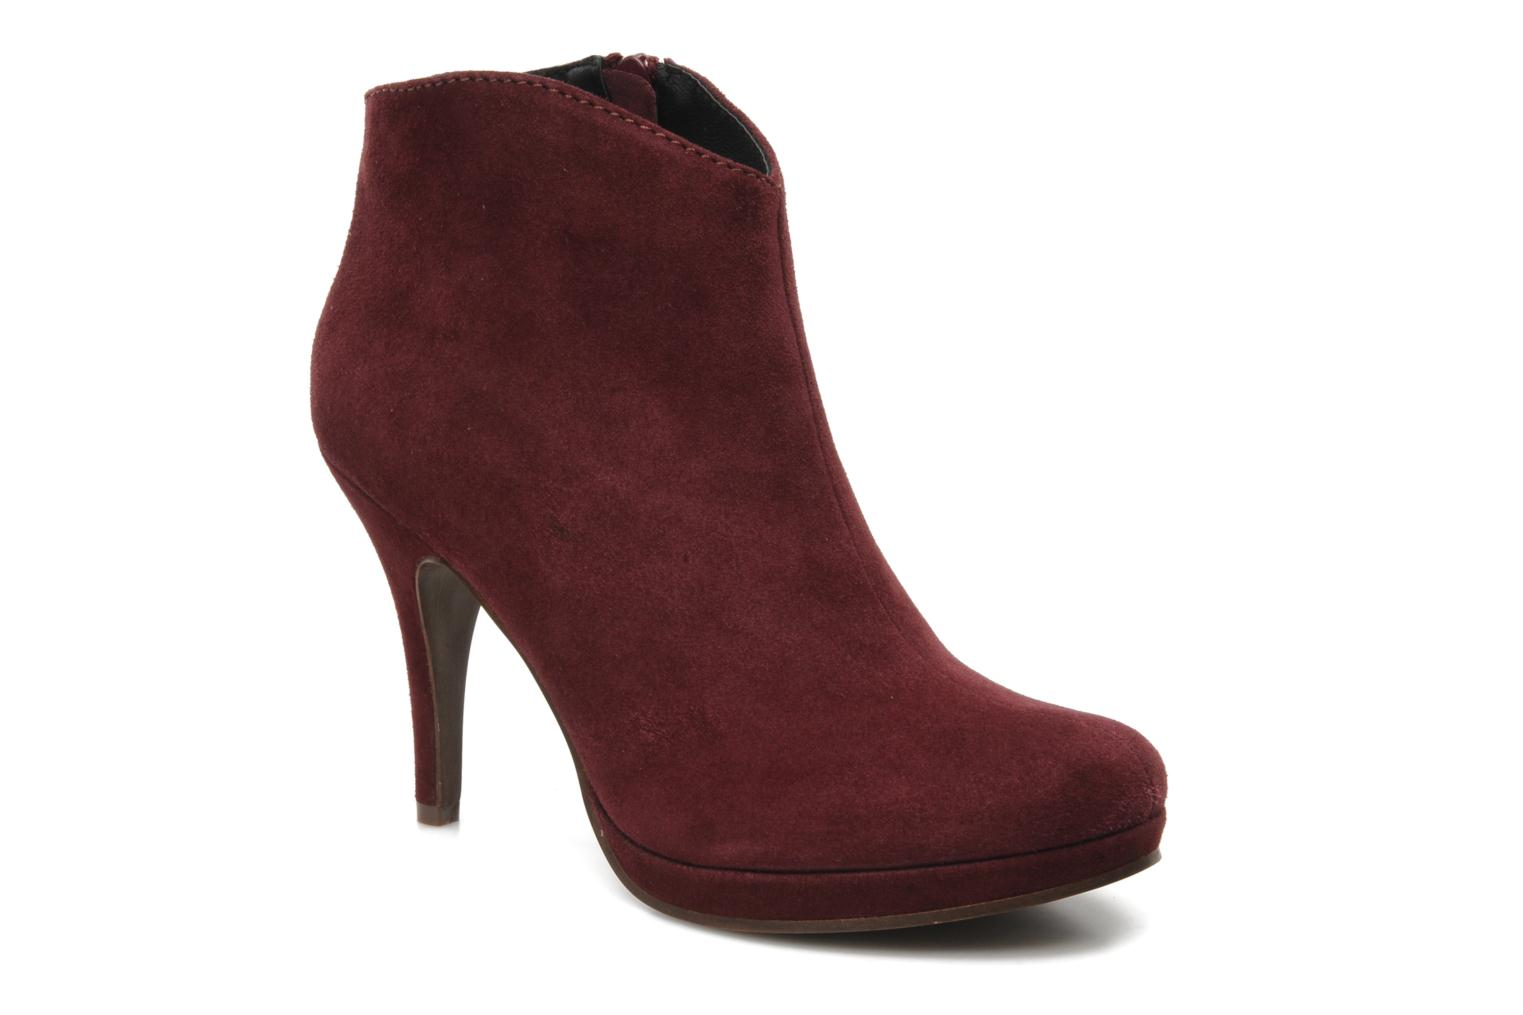 spm acacia ankle boots in burgundy at 106527. Black Bedroom Furniture Sets. Home Design Ideas